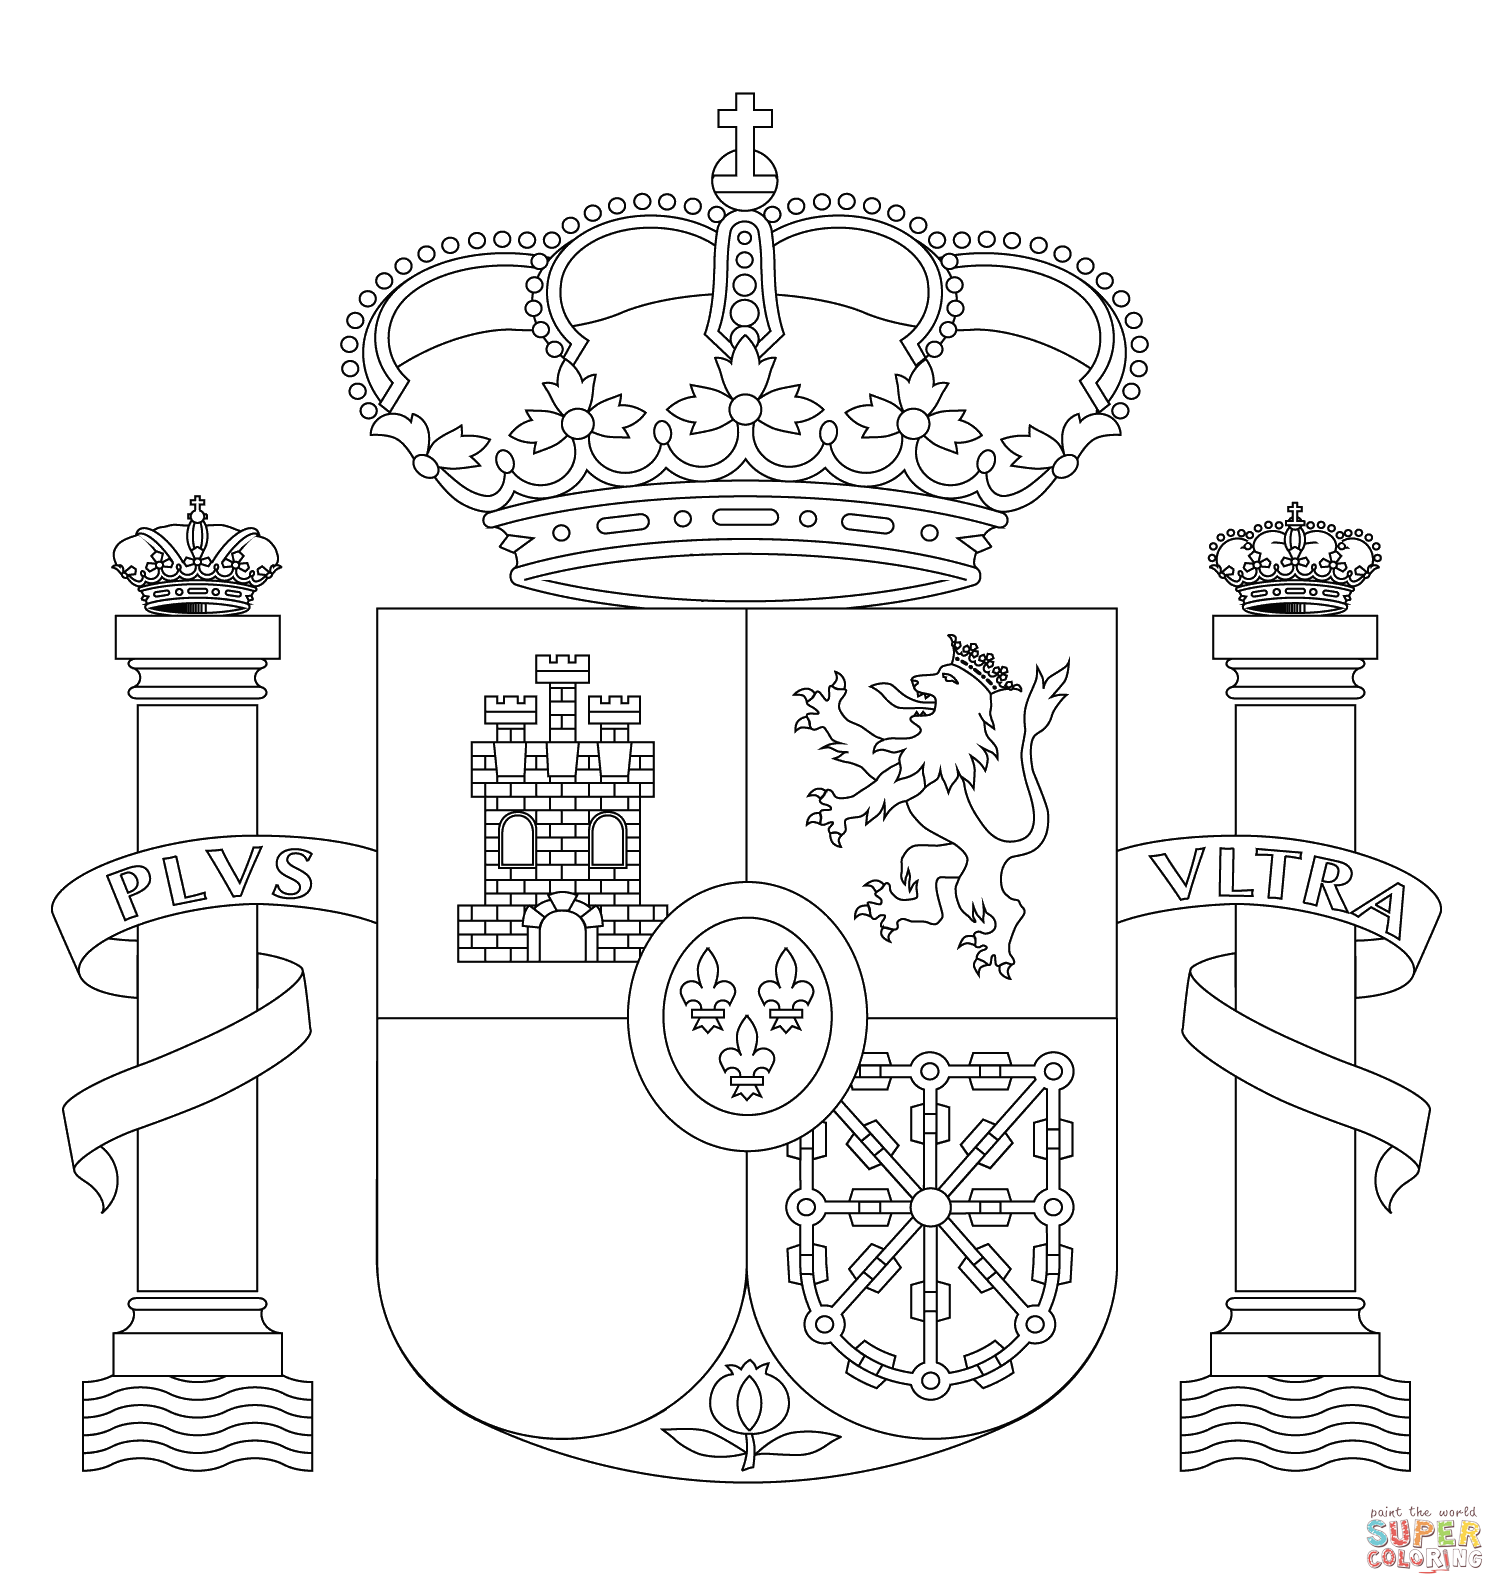 Kids Coloring Page For Spain - Coloring Home